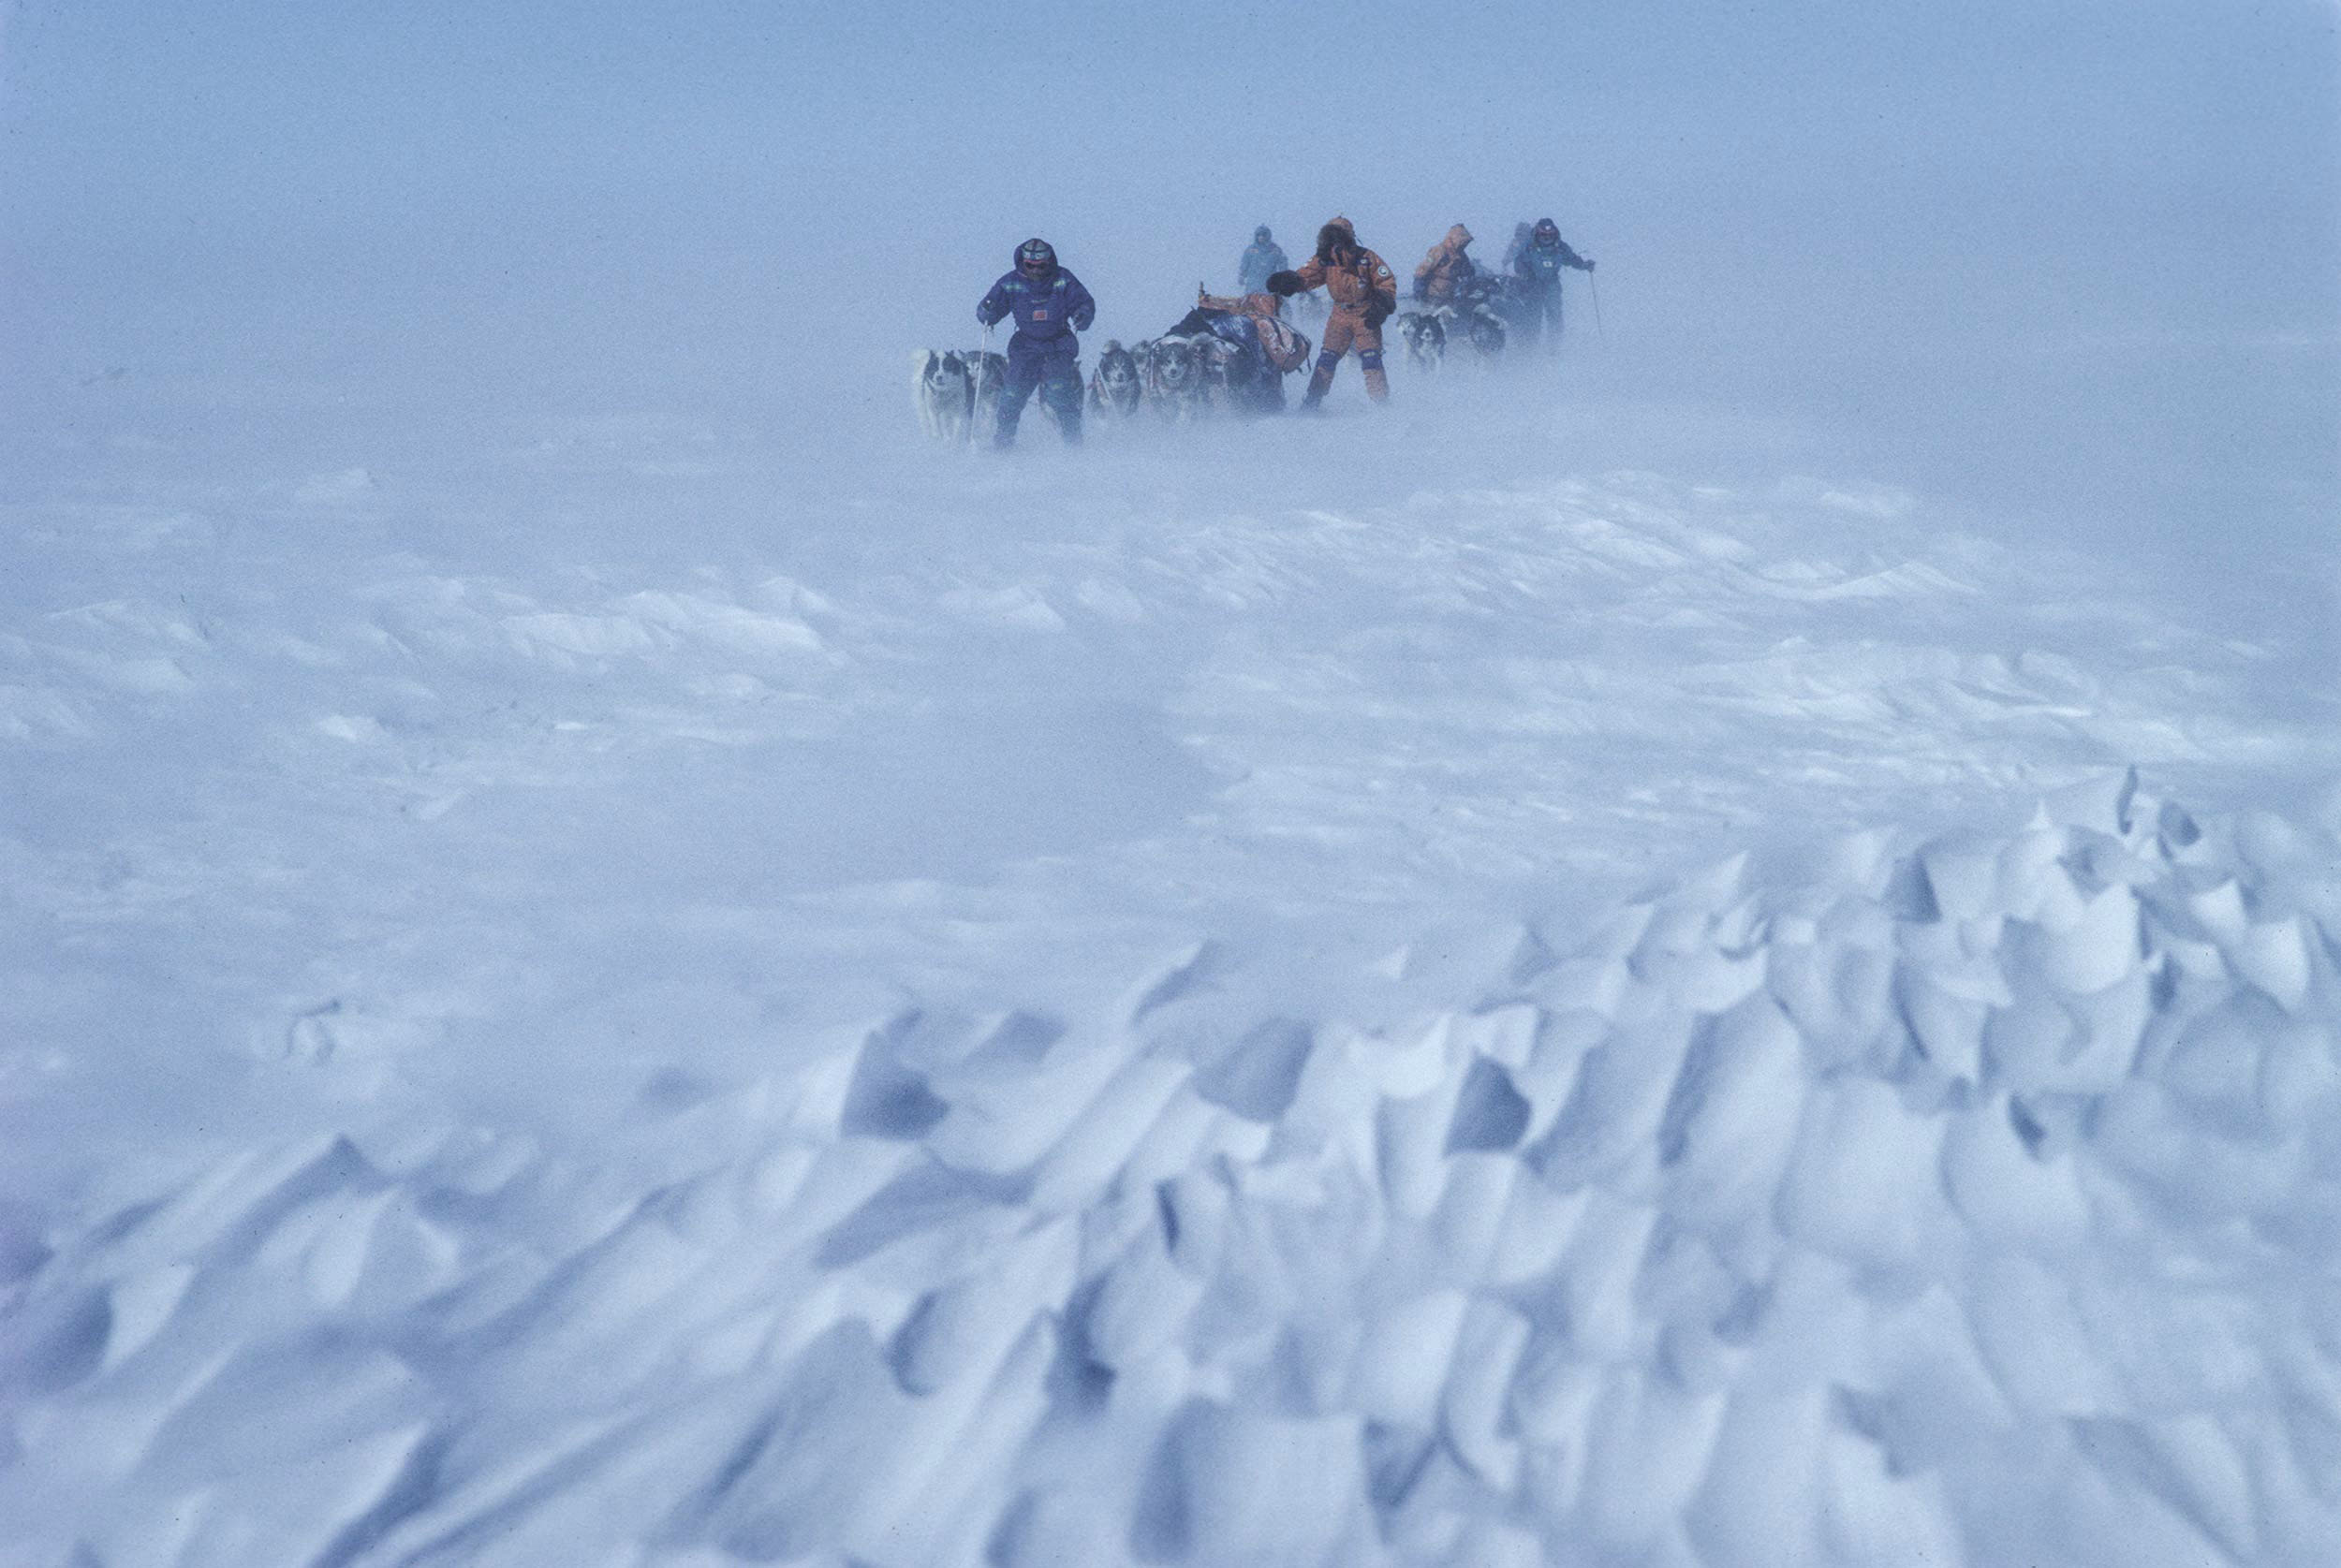 Trans-Antarctica-Expedition-stormy-dogsledding